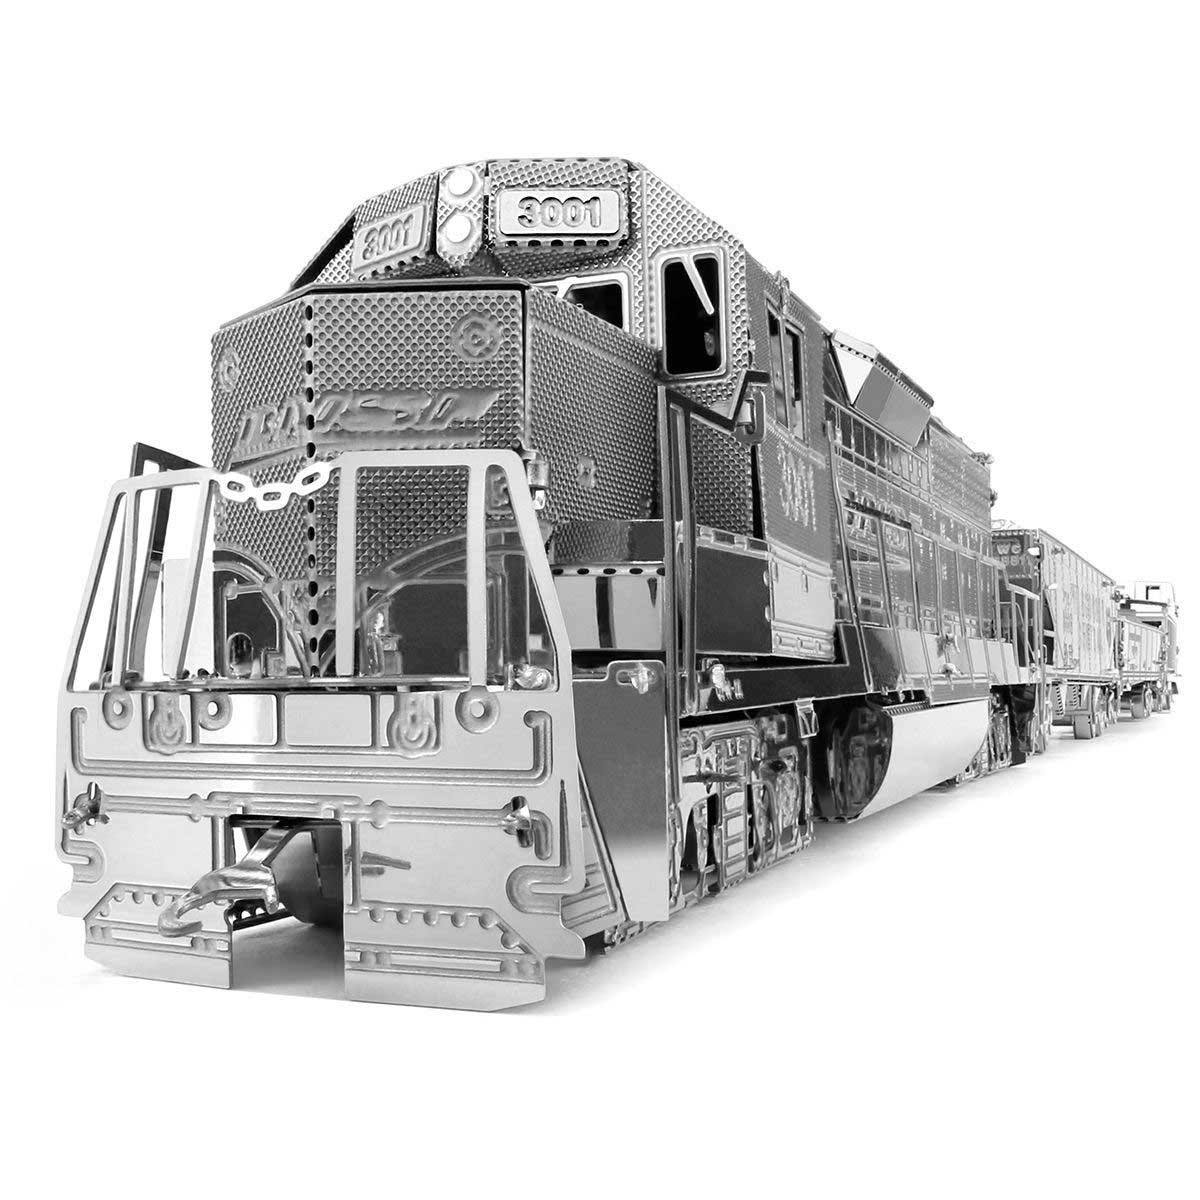 Freight Train Set Trains Metal Puzzles